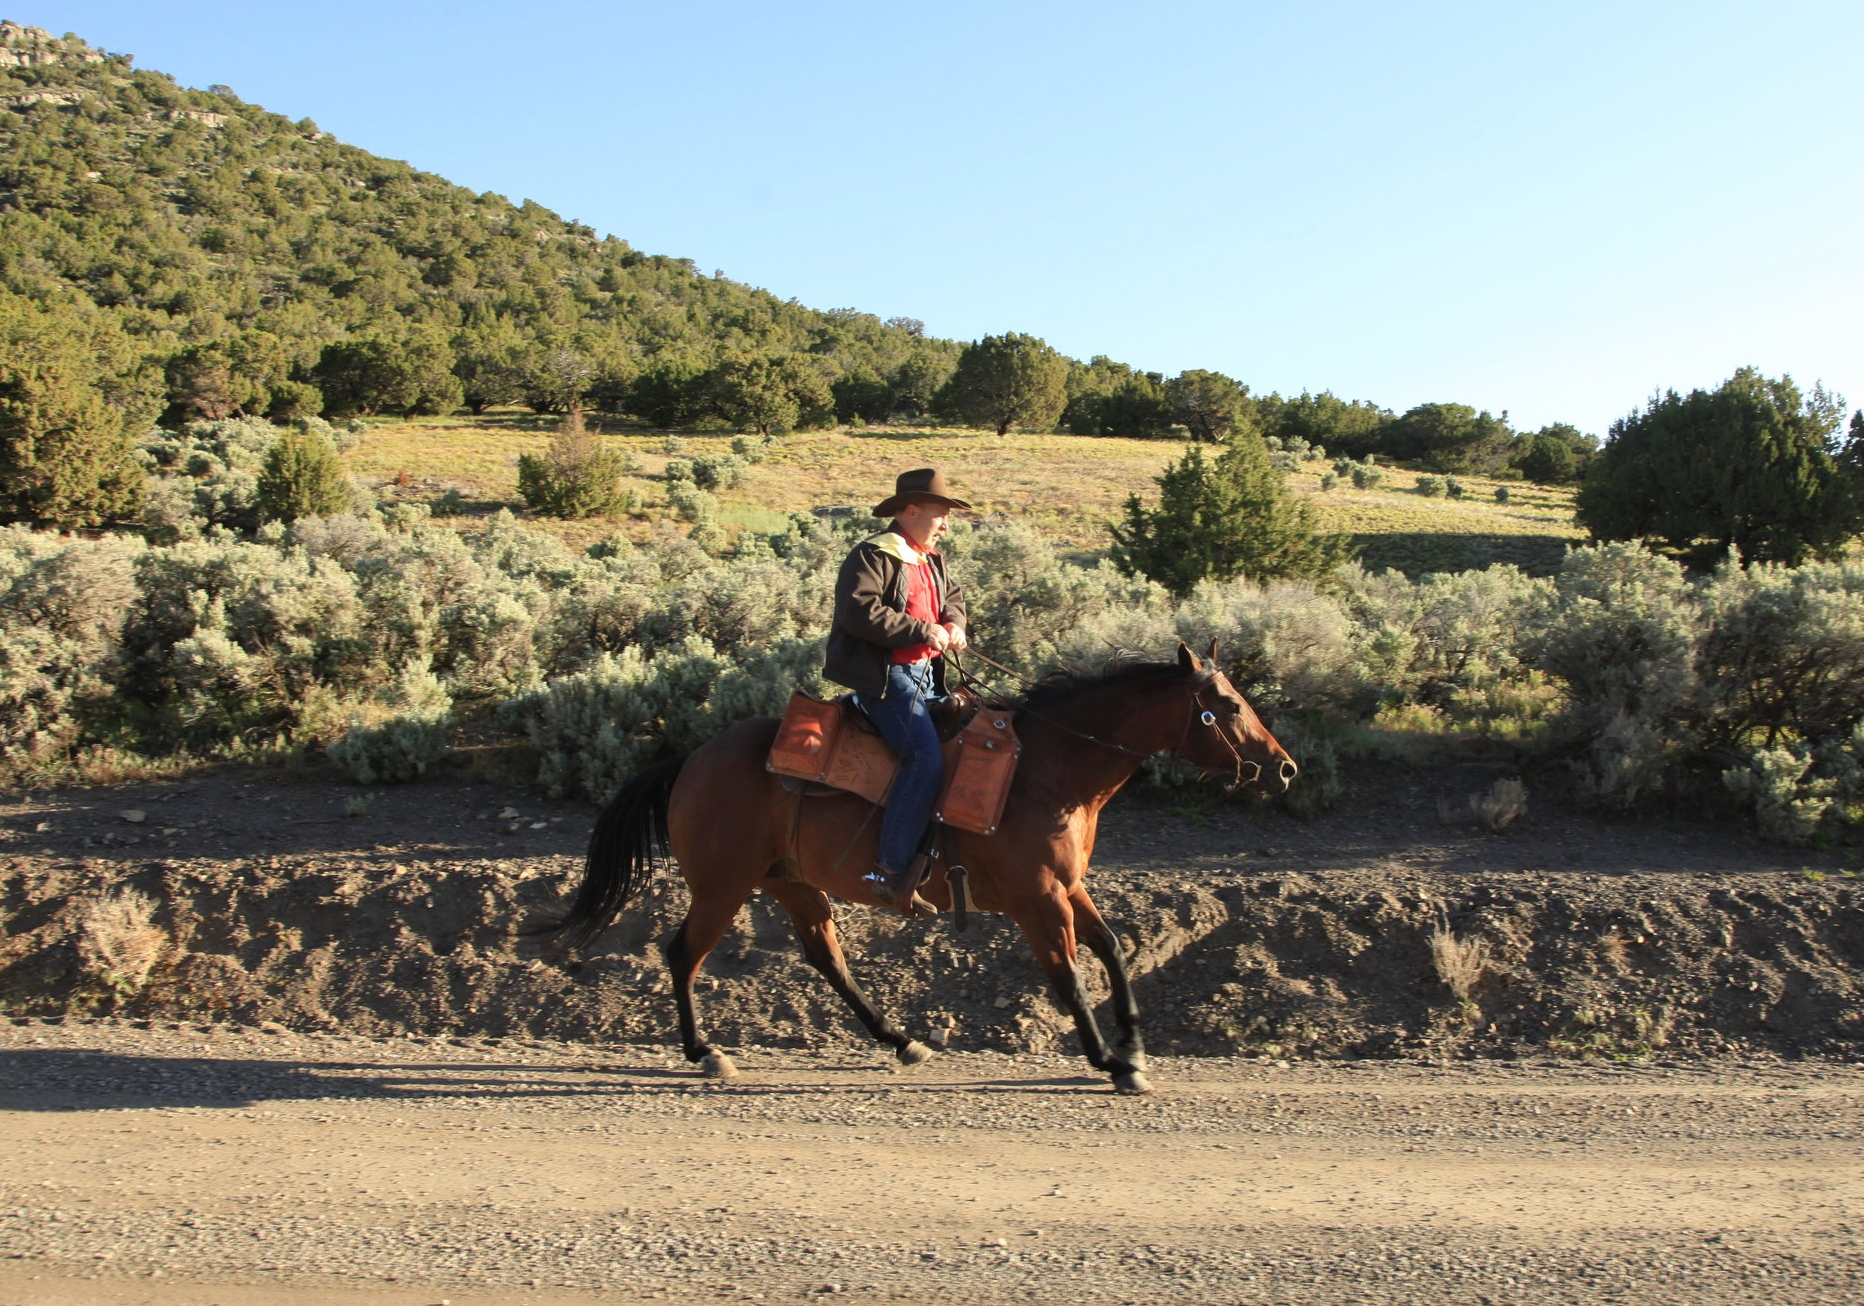 Pat Hearty on a re-ride in western Utah. Photo by Richard Gwin, used with the permission of the National Pony Express Association.